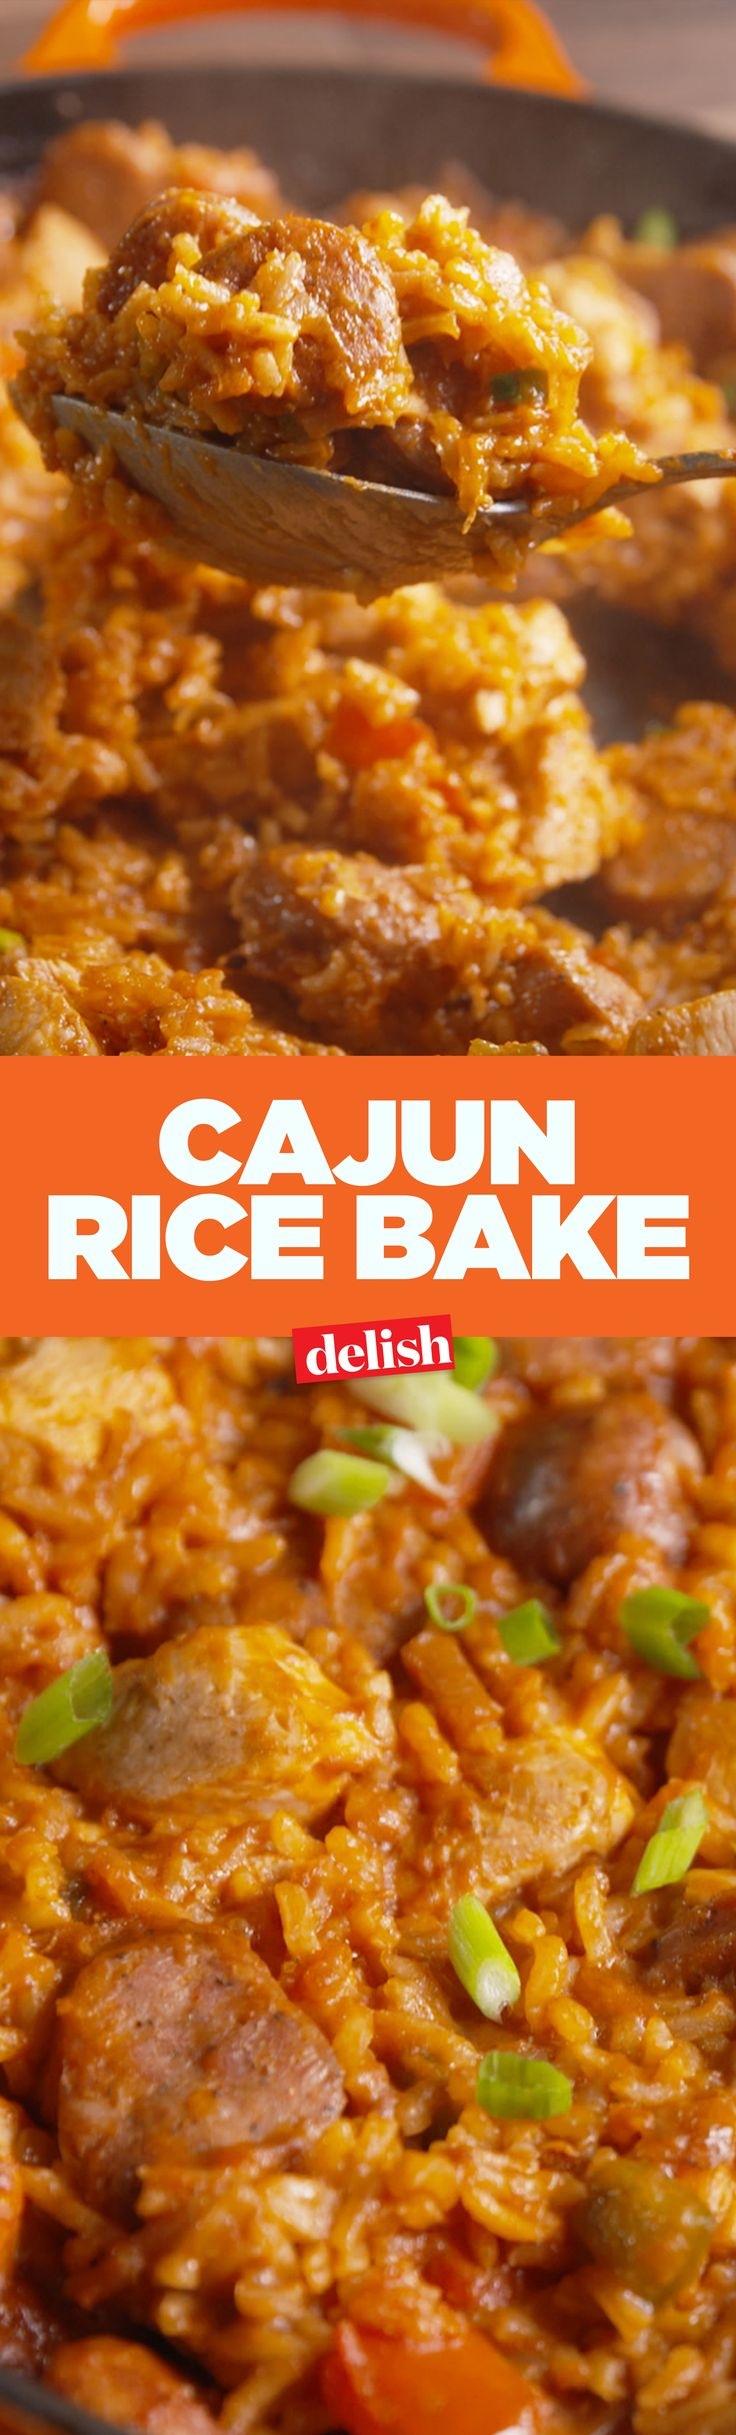 This Cajun Rice Bake will heat up any chilly fall night. Get the recipe on Delish.com.